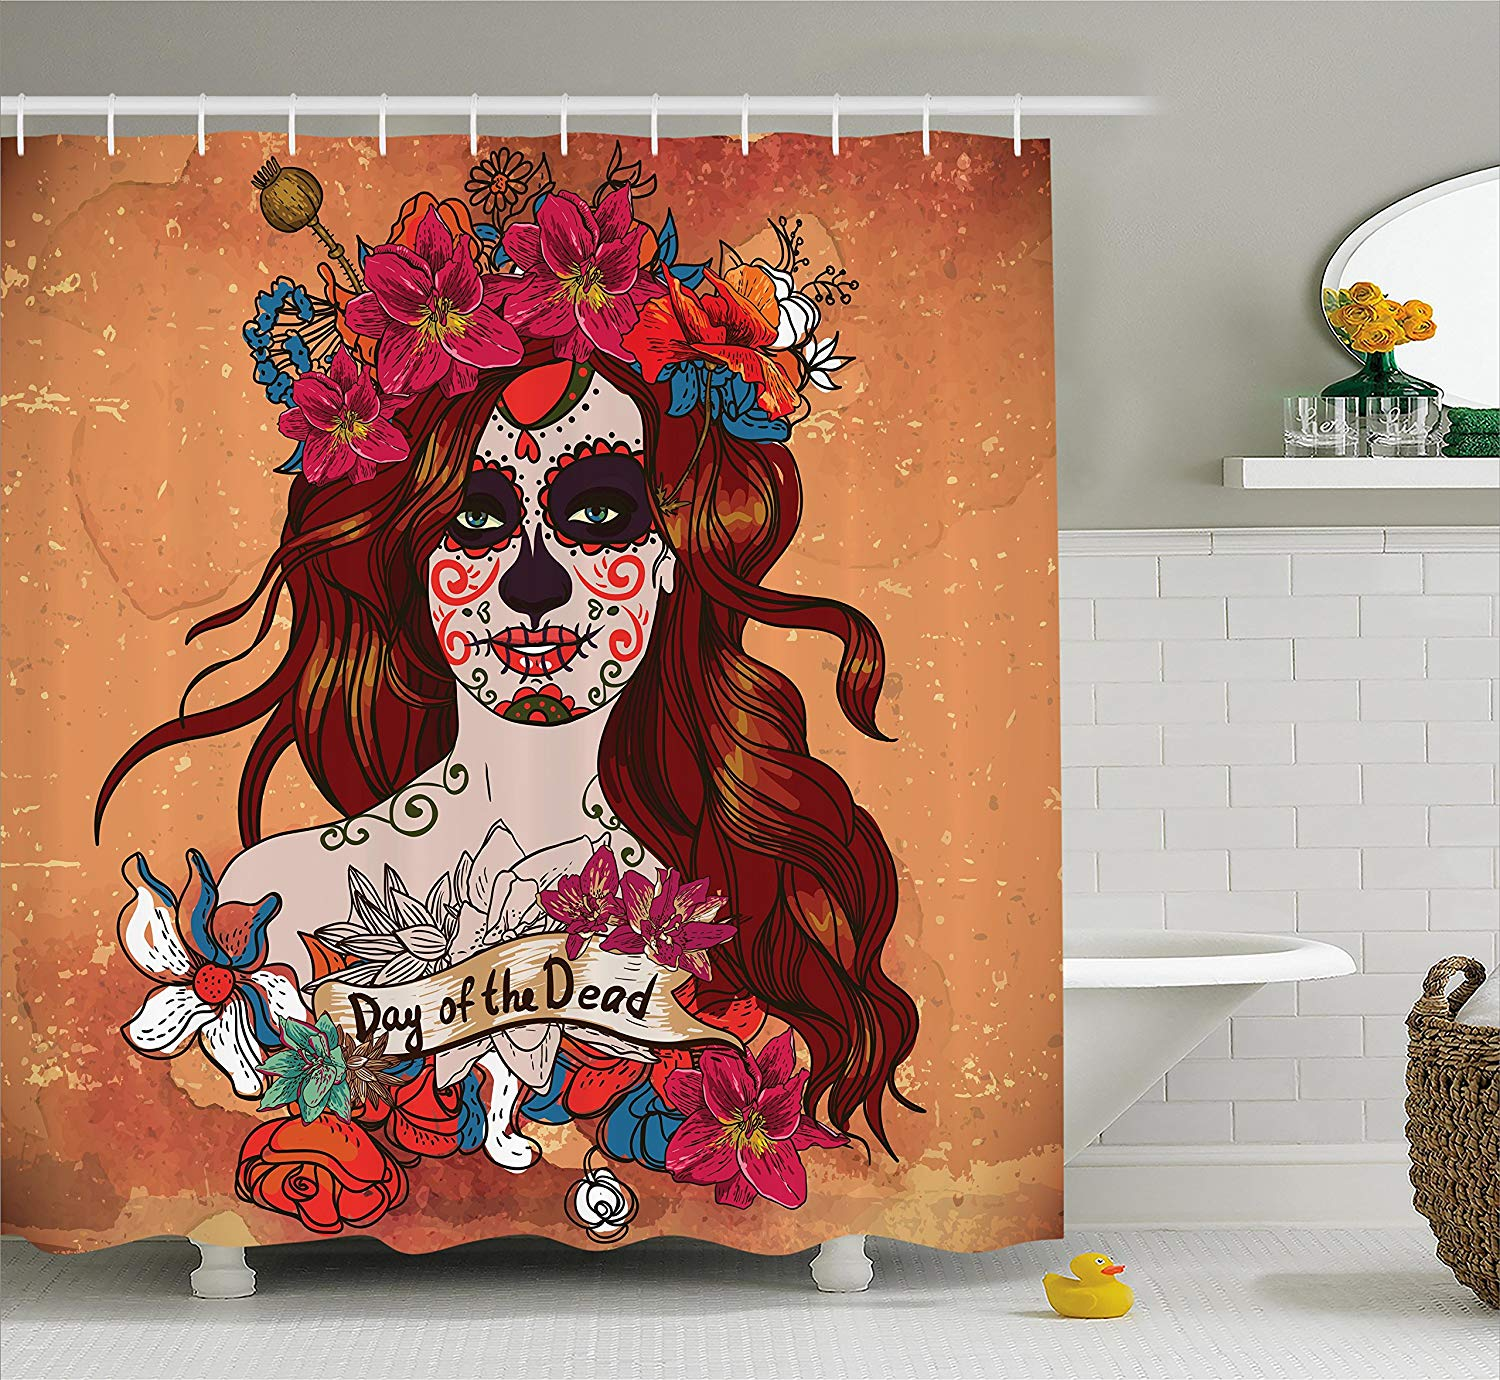 Day Of The Dead Shower Curtain Dia De Los Muertos Spanish Mexican Festive Skull Art Fabric Bathroom Set 70 Inches Cinnamon